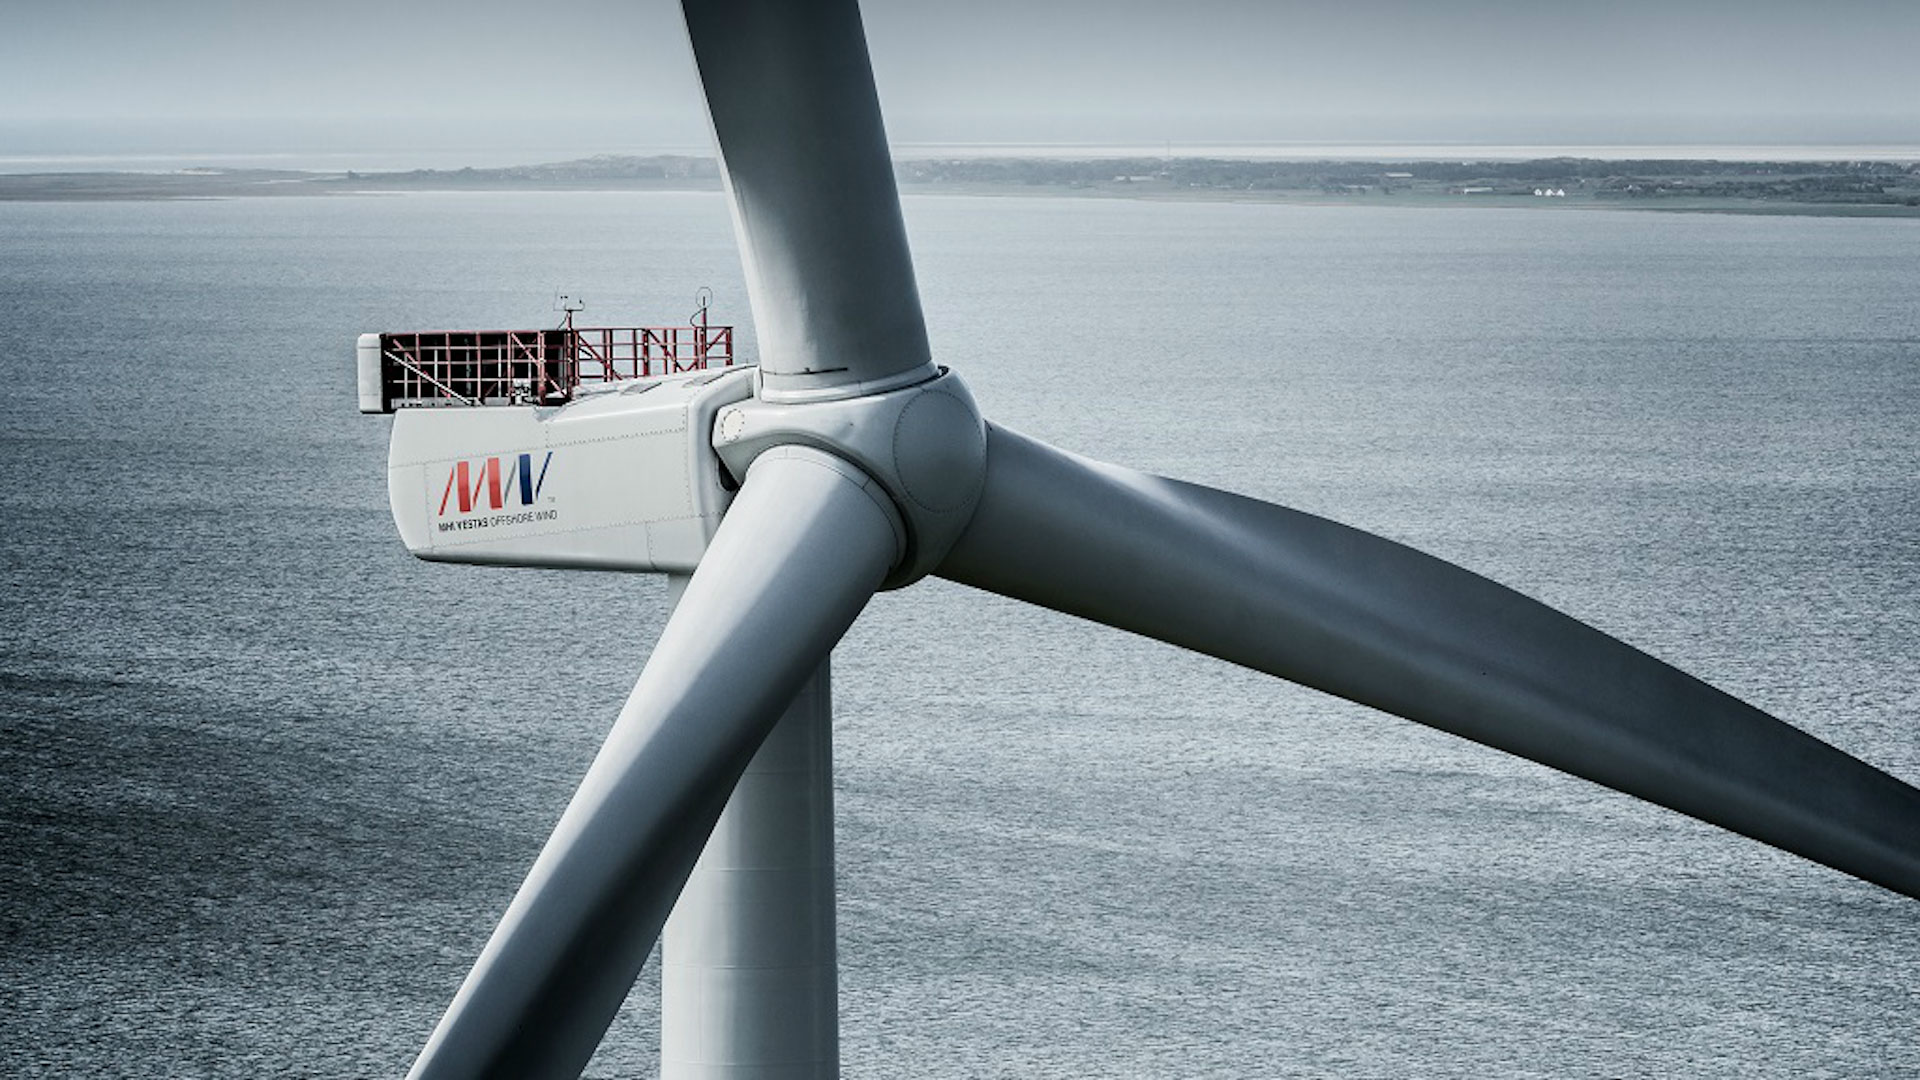 Blyth Offshore Demonstrator Project